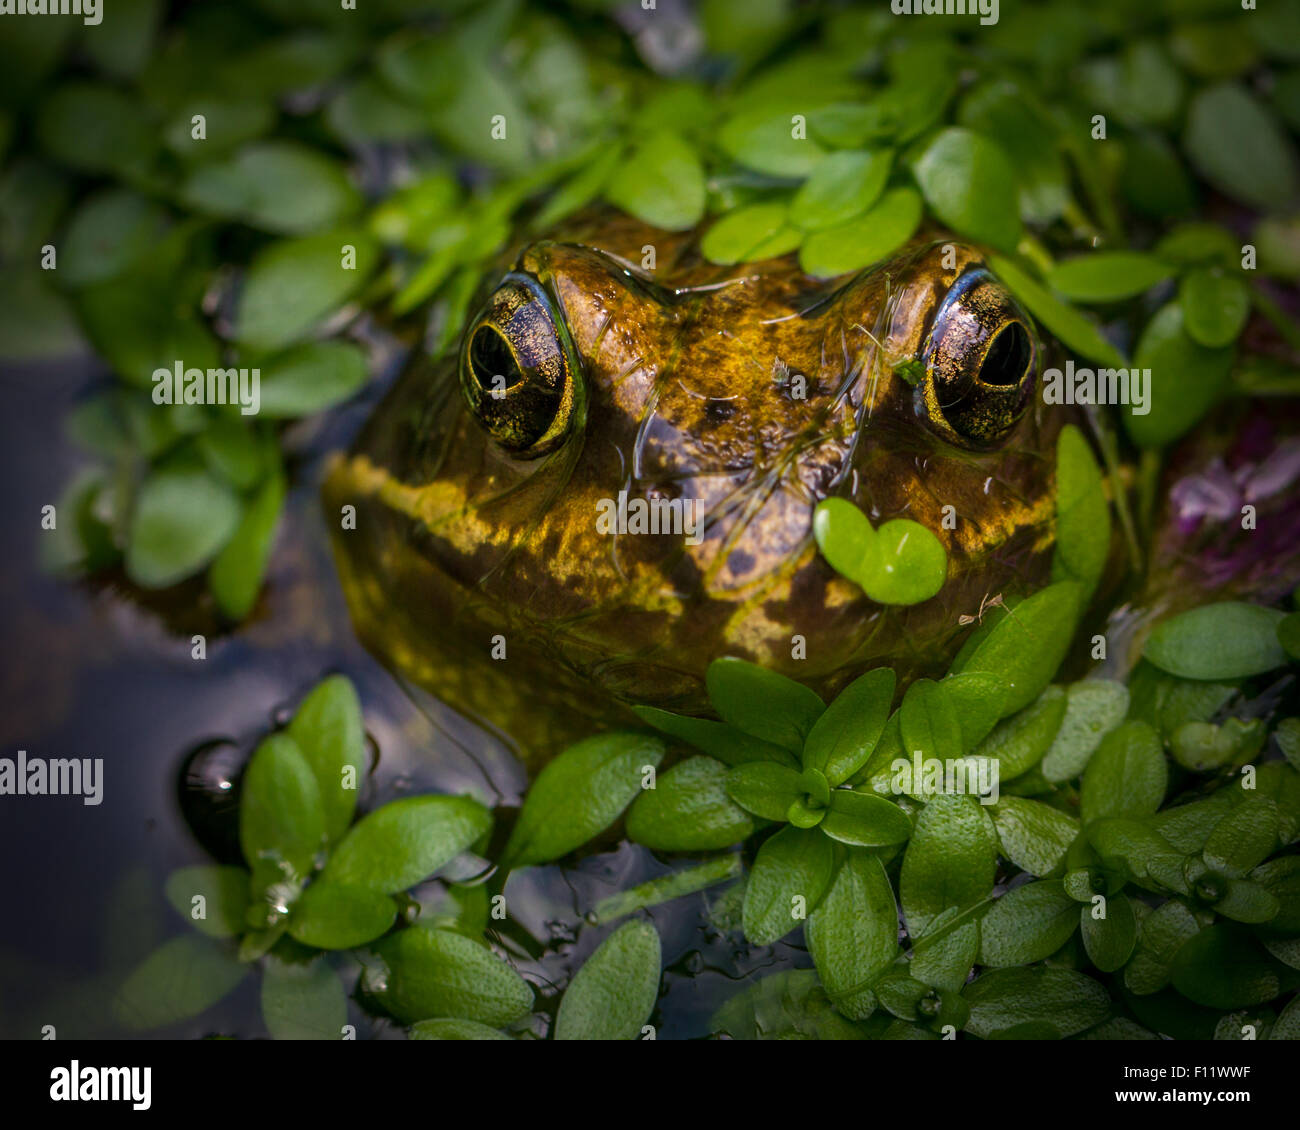 Common Frog (Rana temporaria) with heart shaped leaf on its nose, clearly awaiting a kiss. - Stock Image